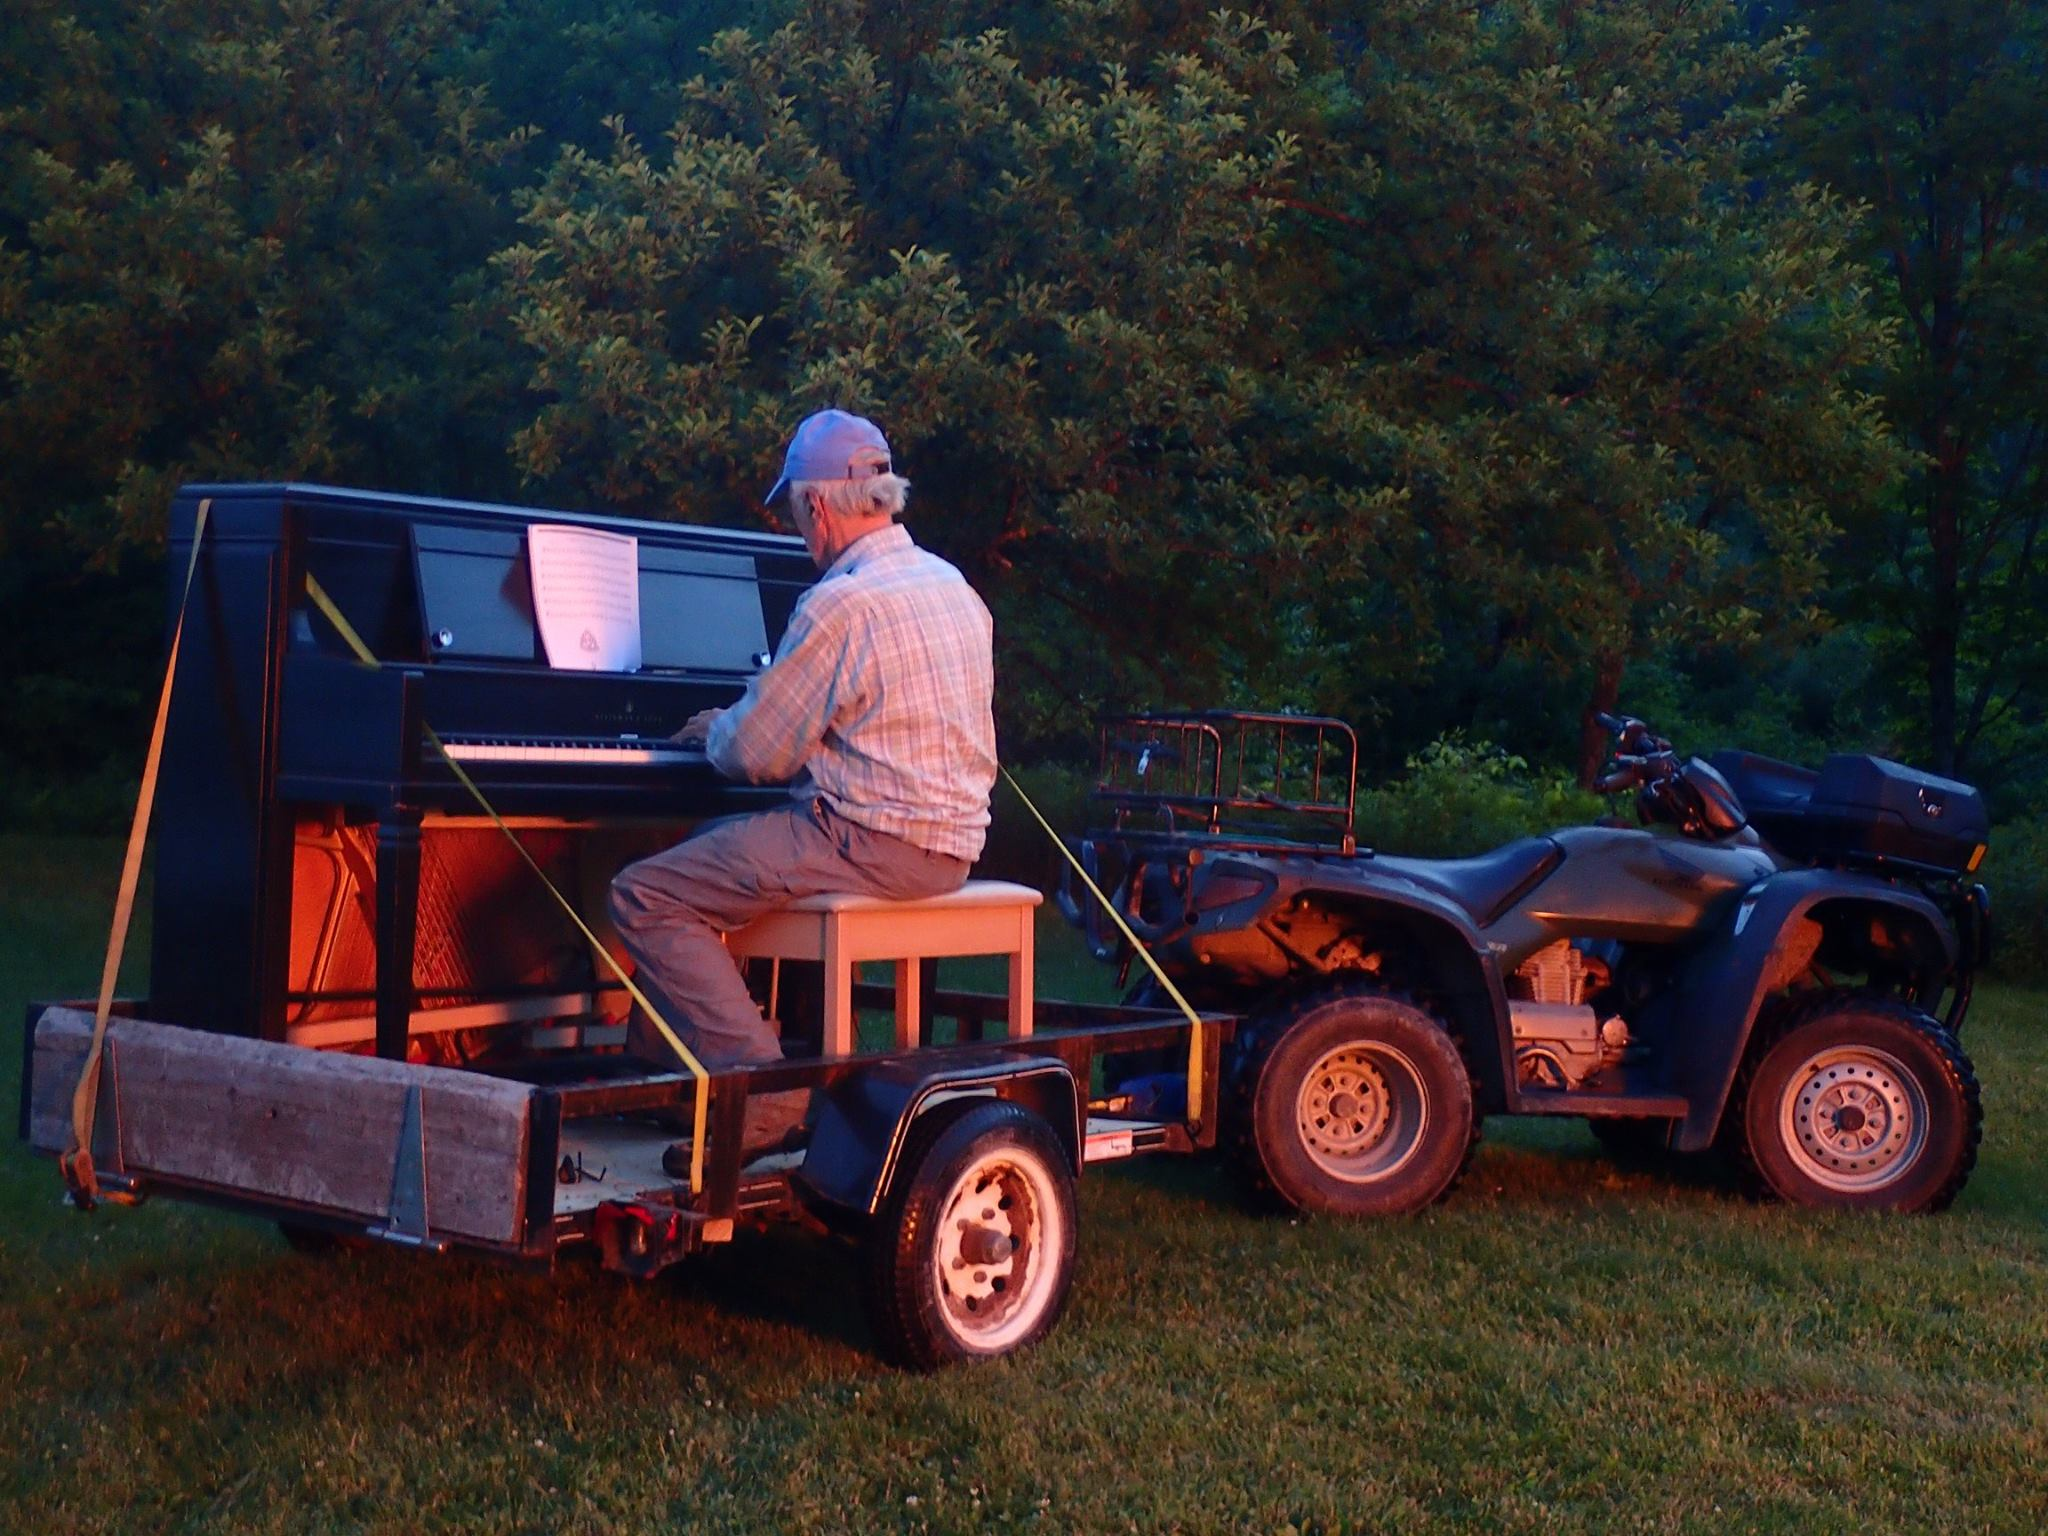 John and mobile piano still glowing